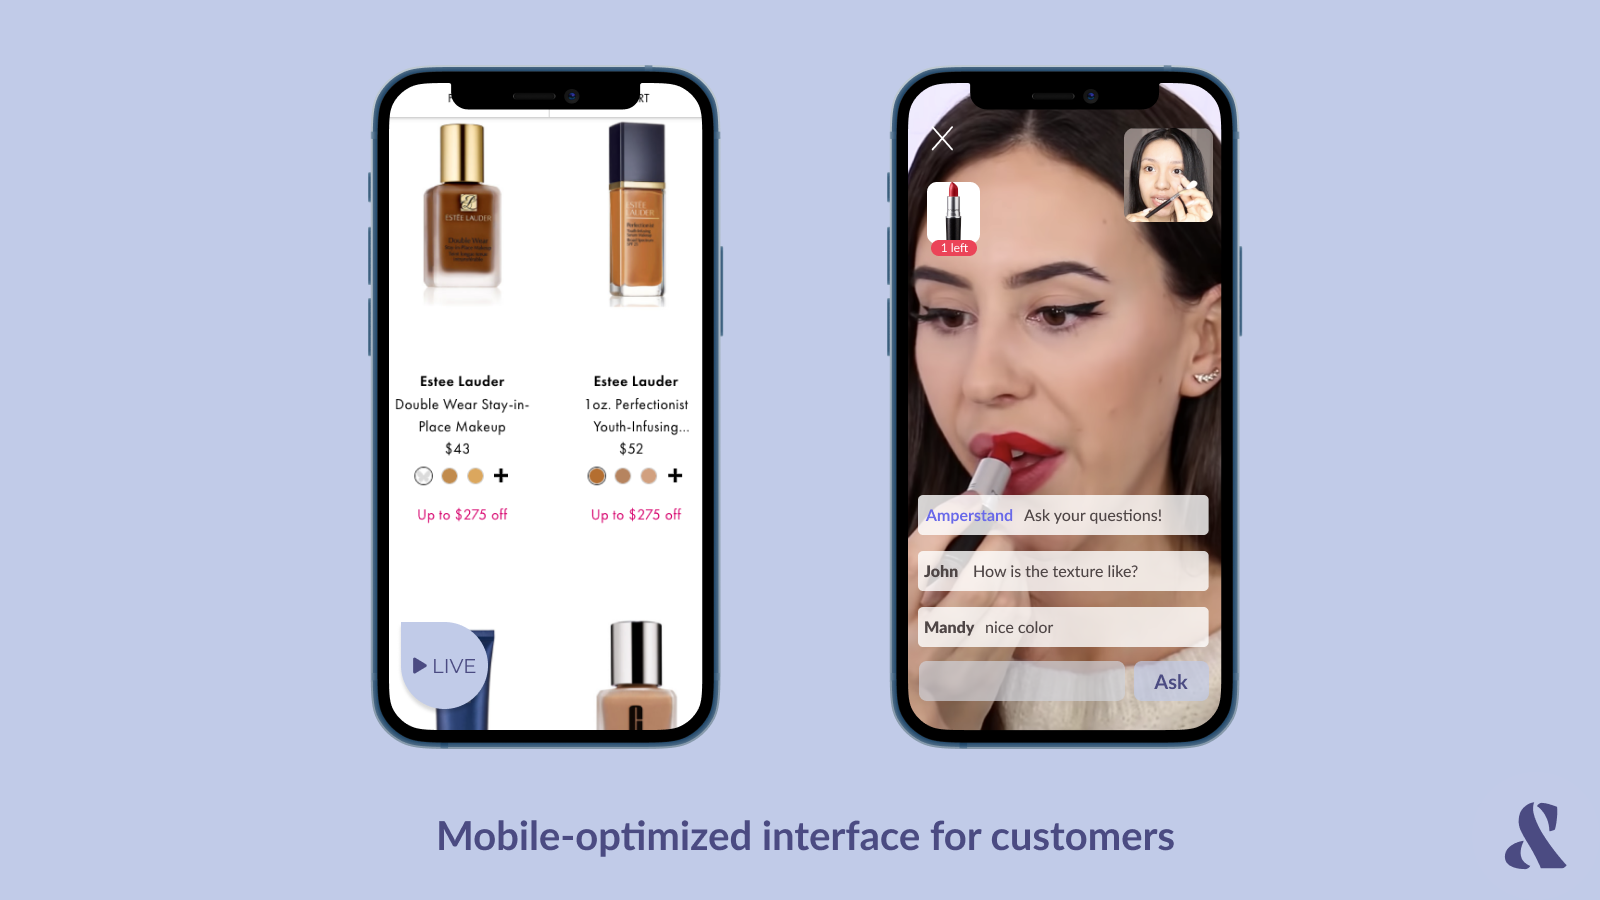 Mobile-optimized interface makes buying easy